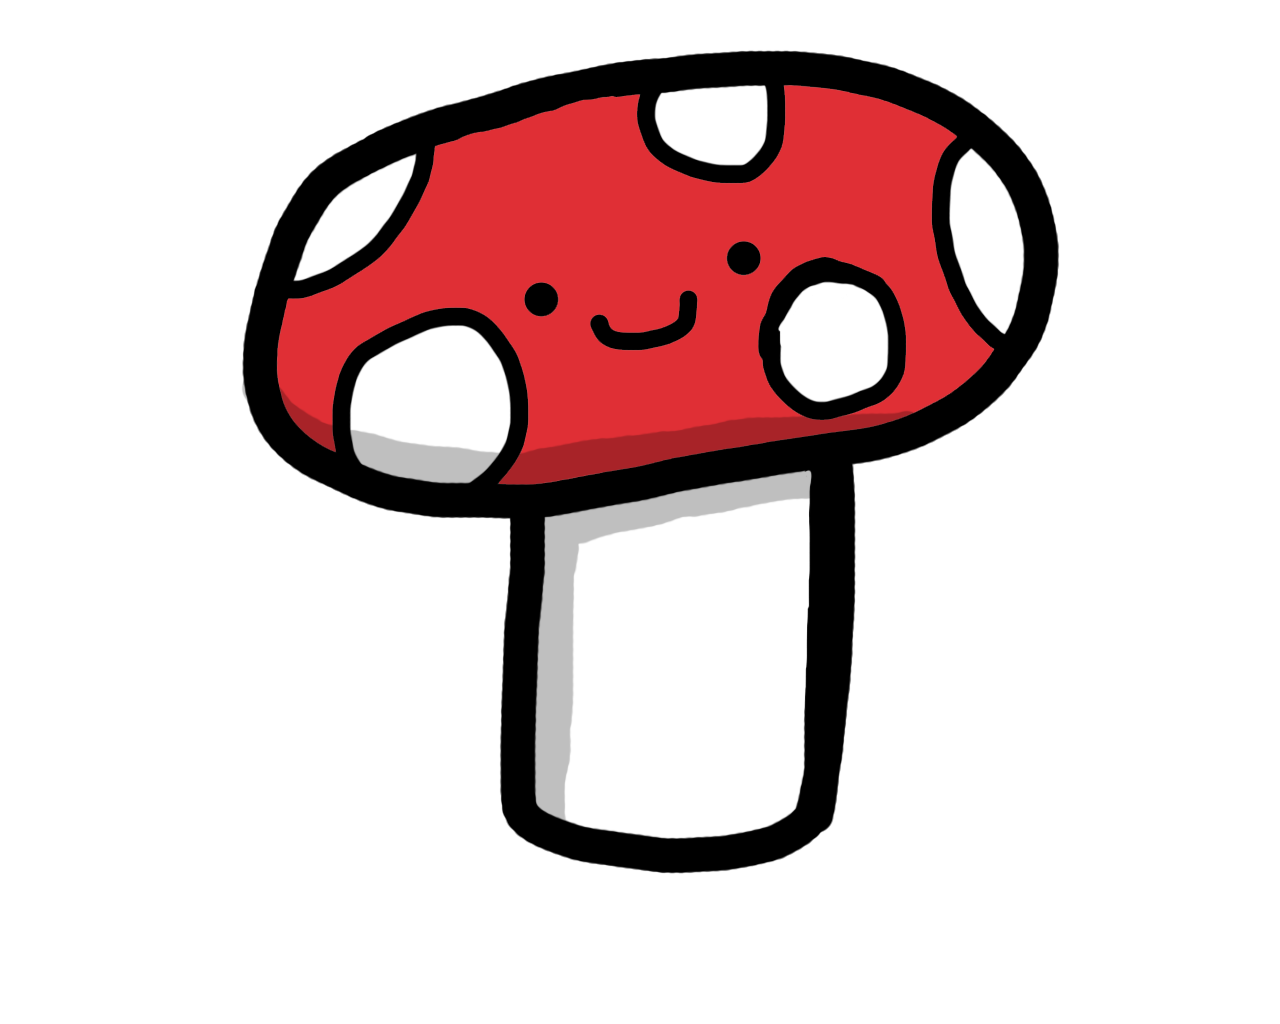 royalty free stock Cute mushroom by Miki